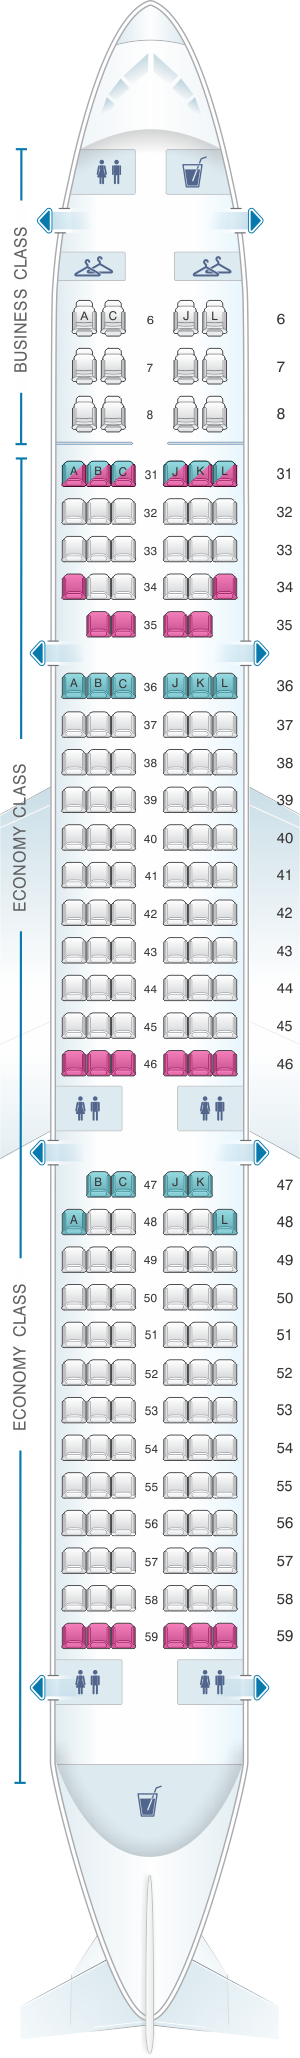 Seat map for China Eastern Airlines Airbus A321 200 182PAX